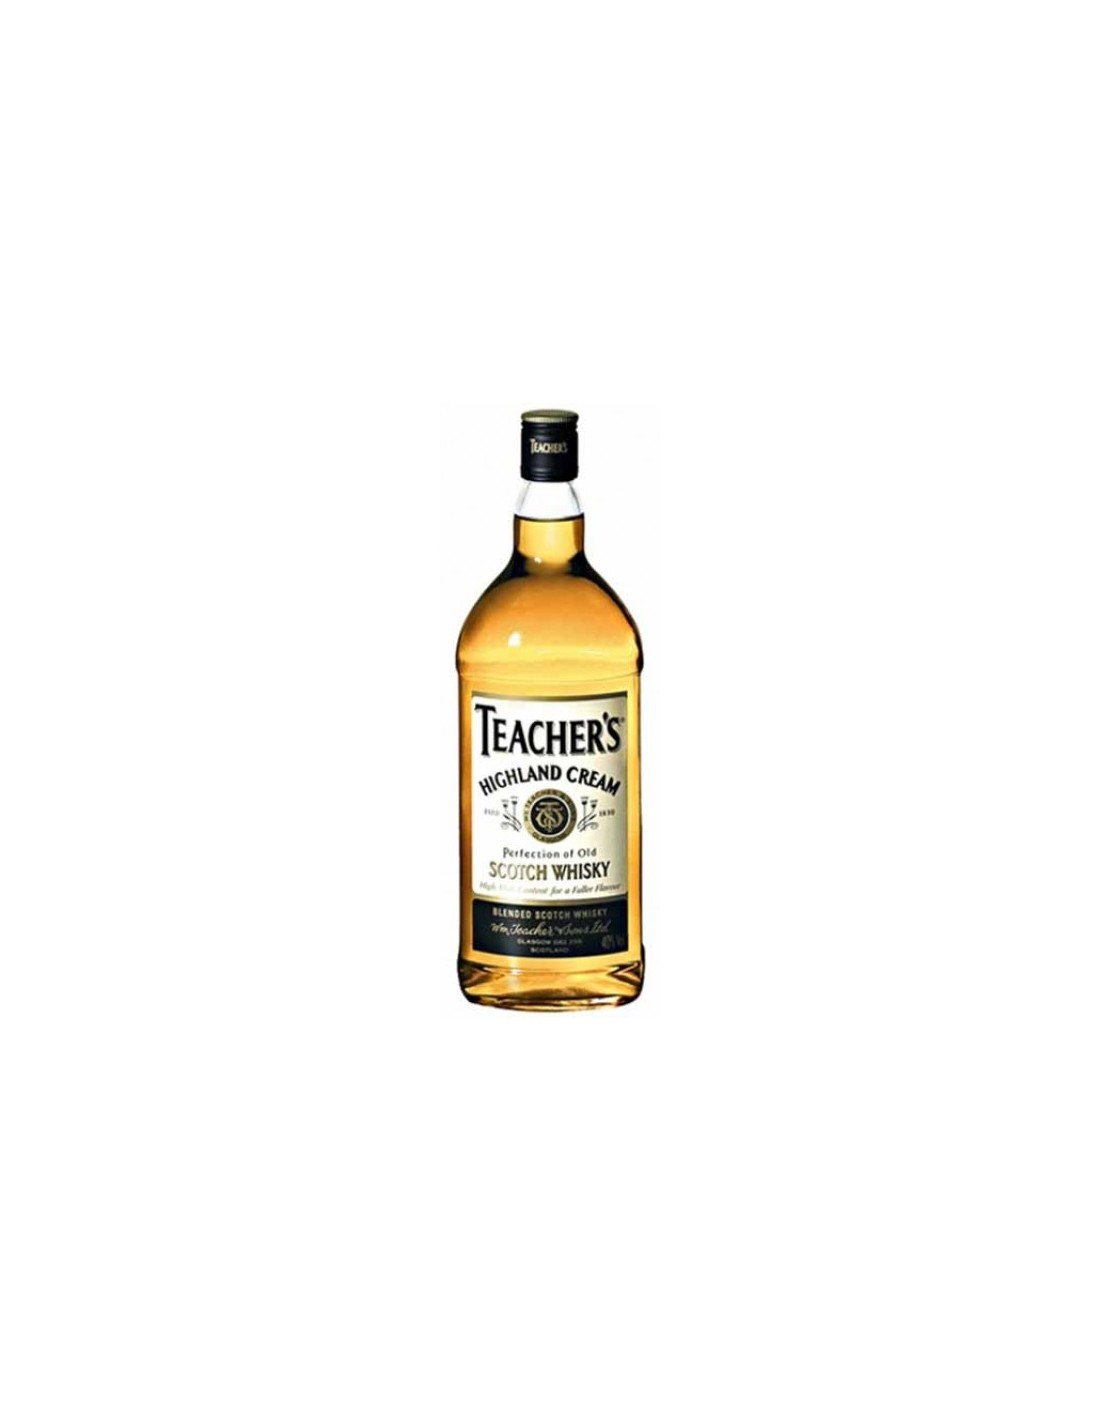 Whisky Teacher's, 40% alc., 1L, Scotia